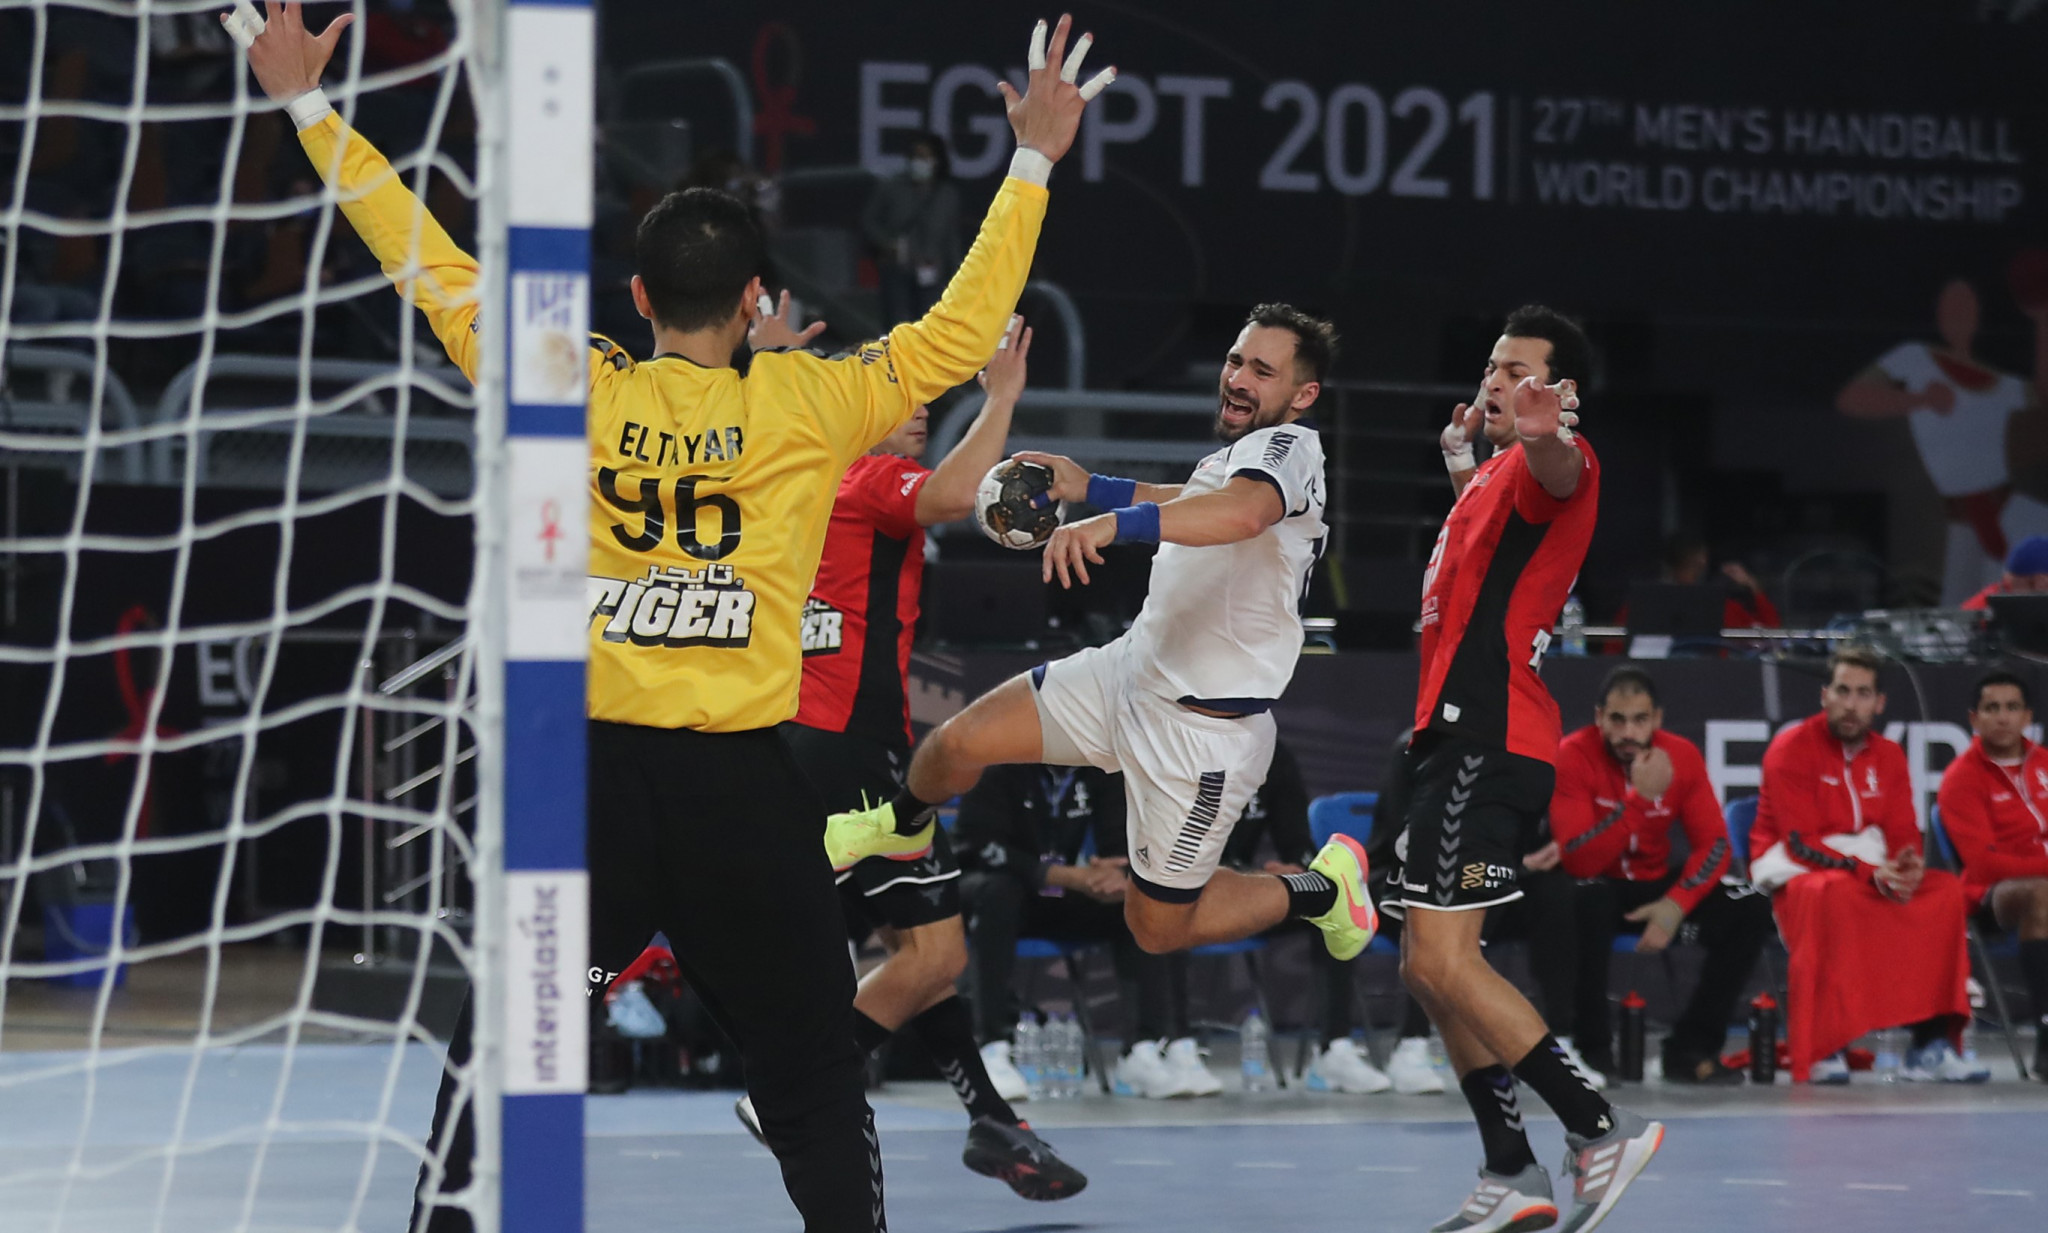 Egypt beat Chile in the Men's Handball World Championship curtain-raiser ©Getty Images